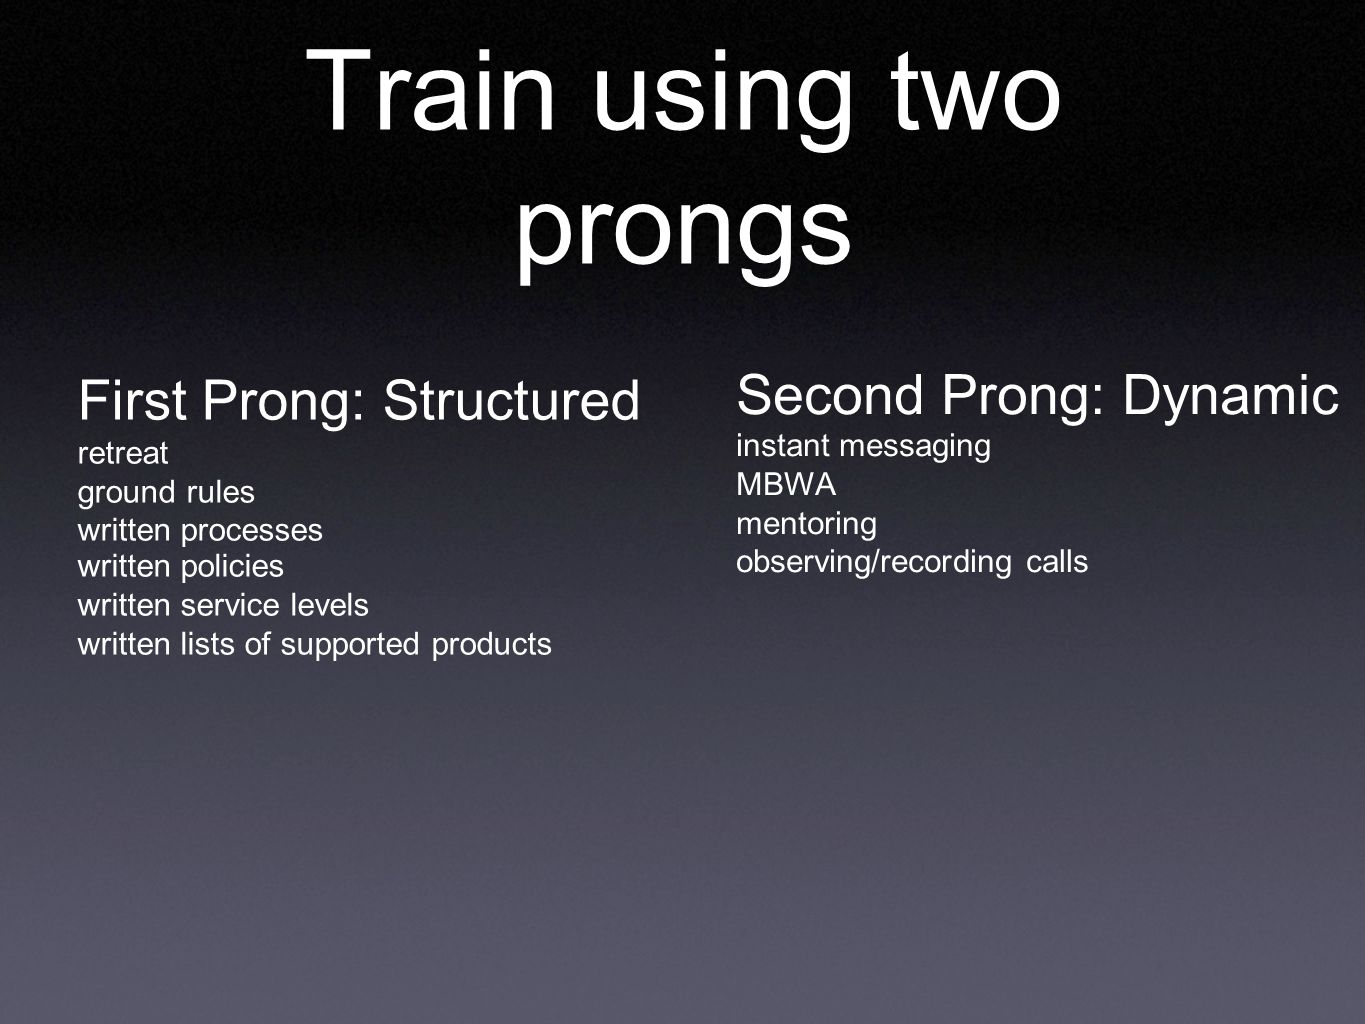 Train using two prongs First Prong: Structured retreat ground rules written processes written policies written service levels written lists of supported products Second Prong: Dynamic instant messaging MBWA mentoring observing/recording calls